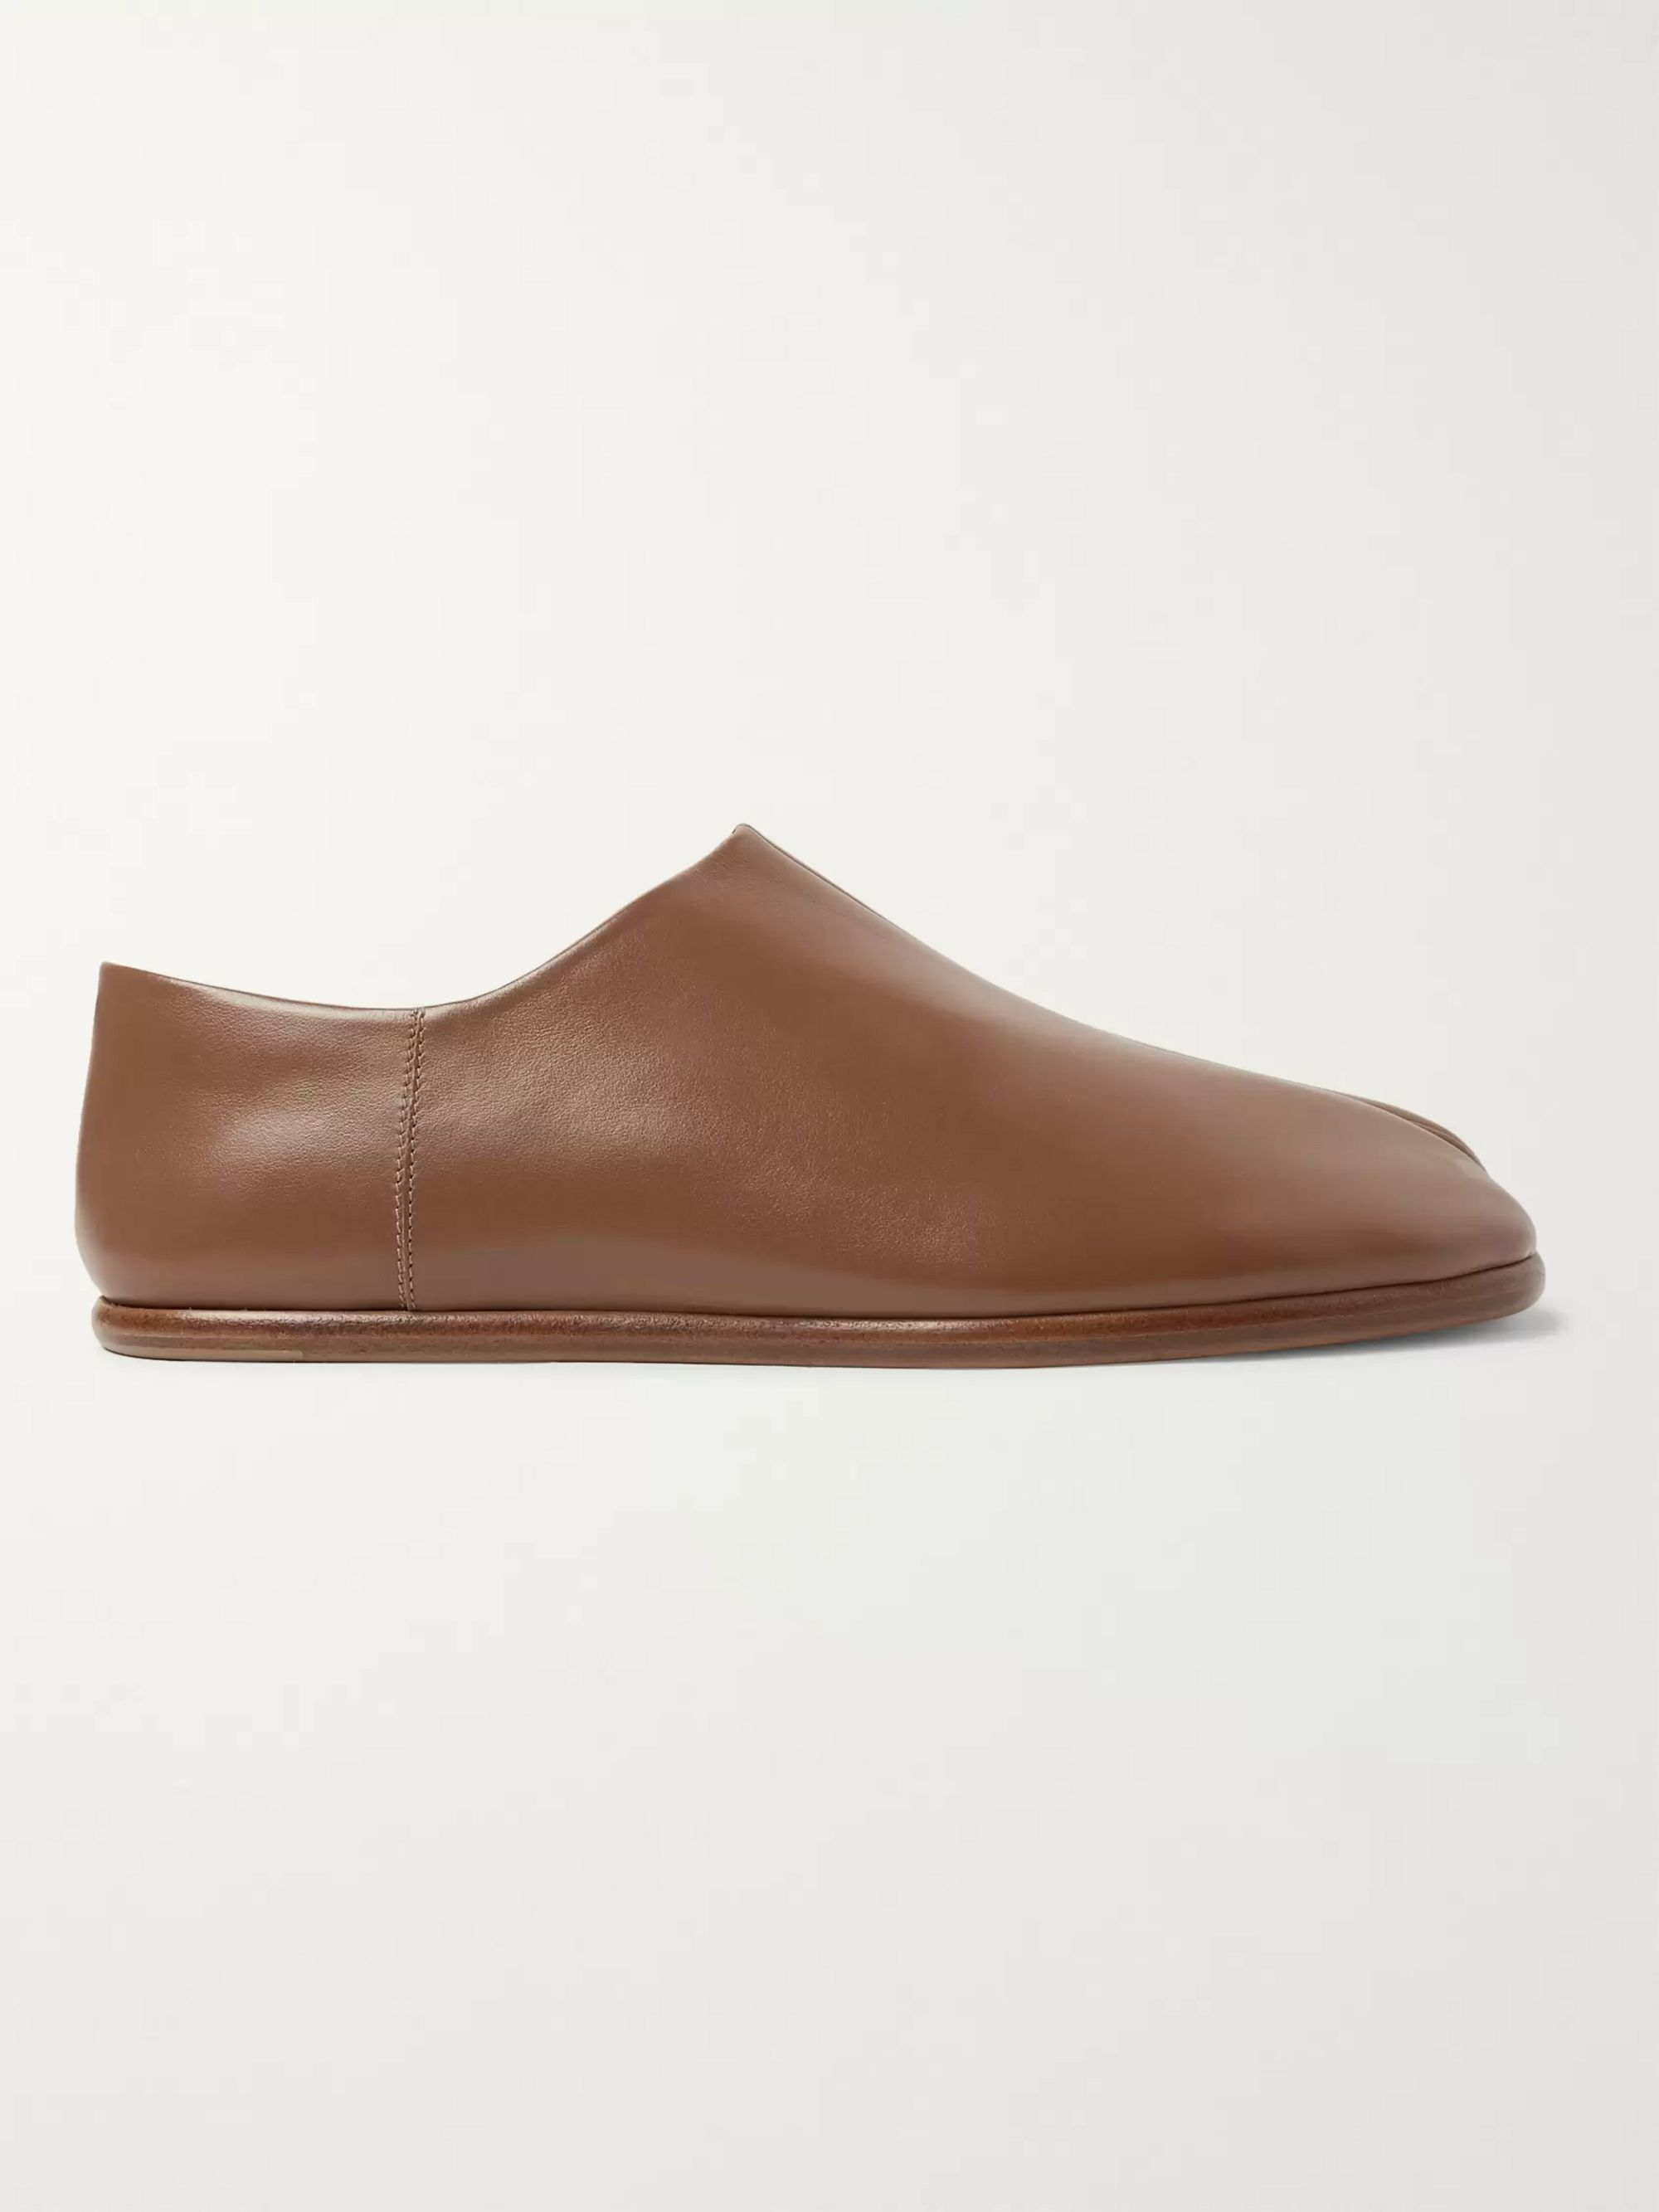 Maison Margiela Tabi Collapsible-Heel Split-Toe Leather Loafers